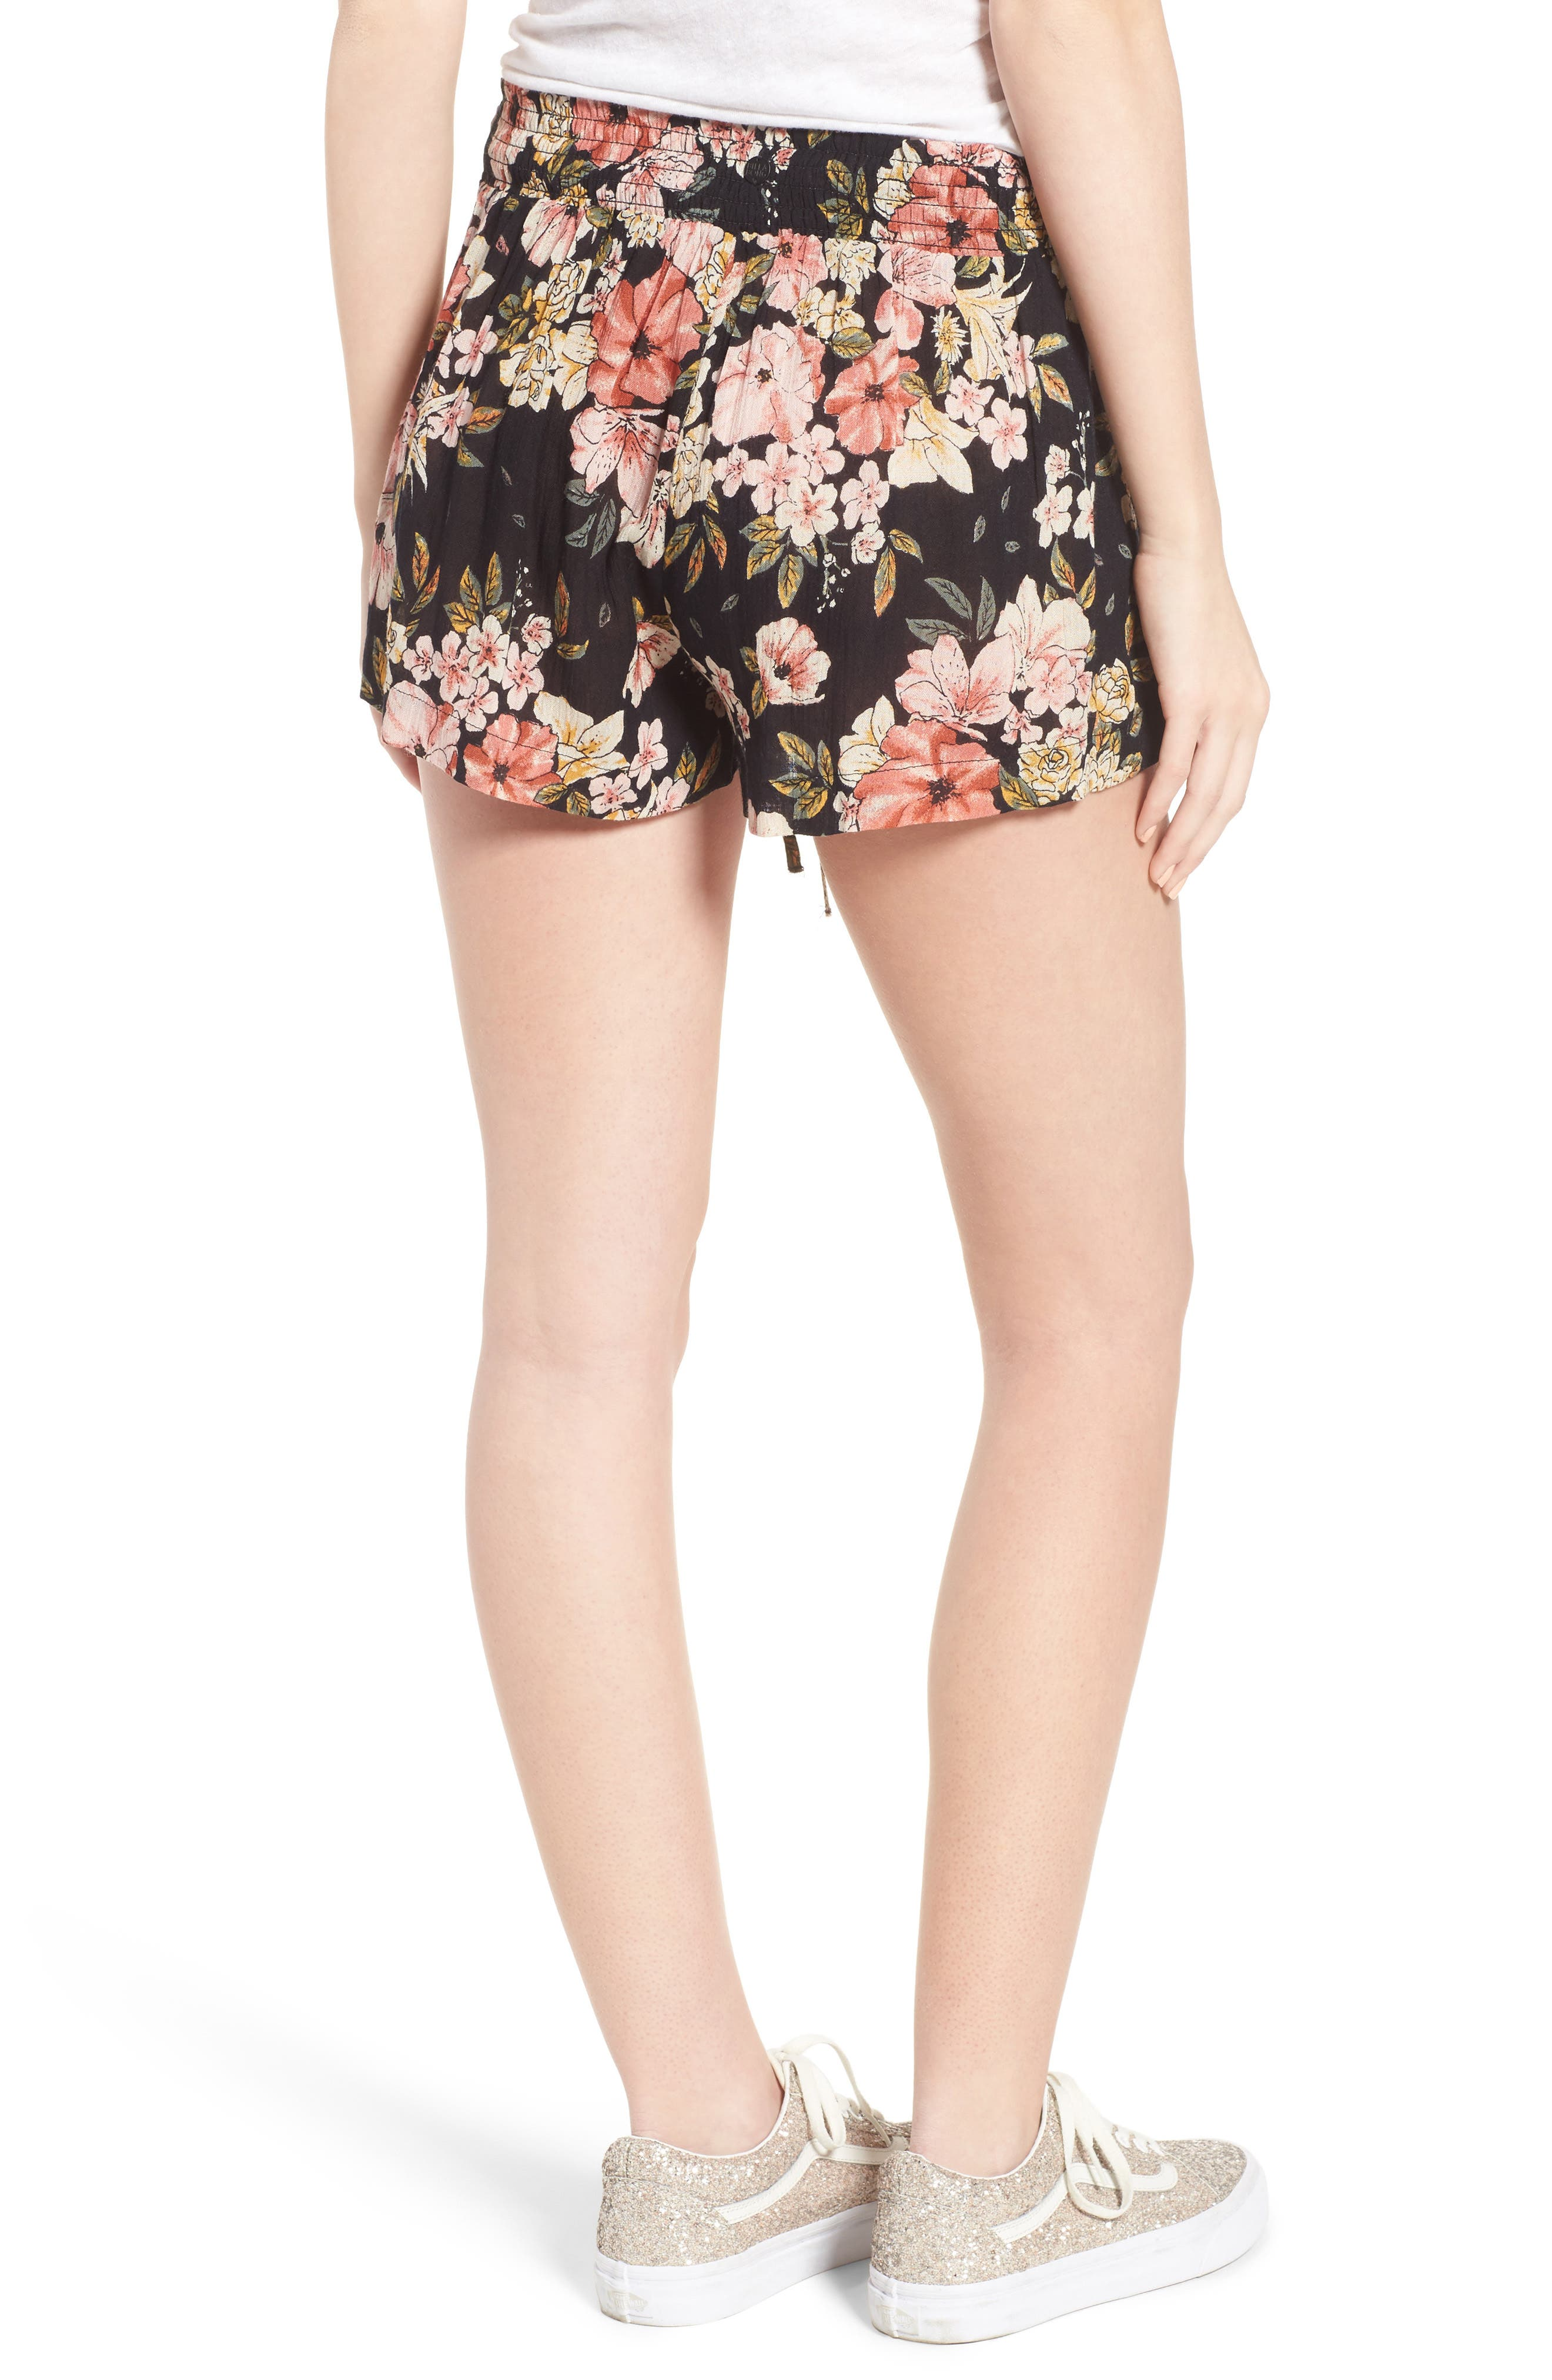 Trippy Day Floral Print Shorts,                             Alternate thumbnail 2, color,                             001